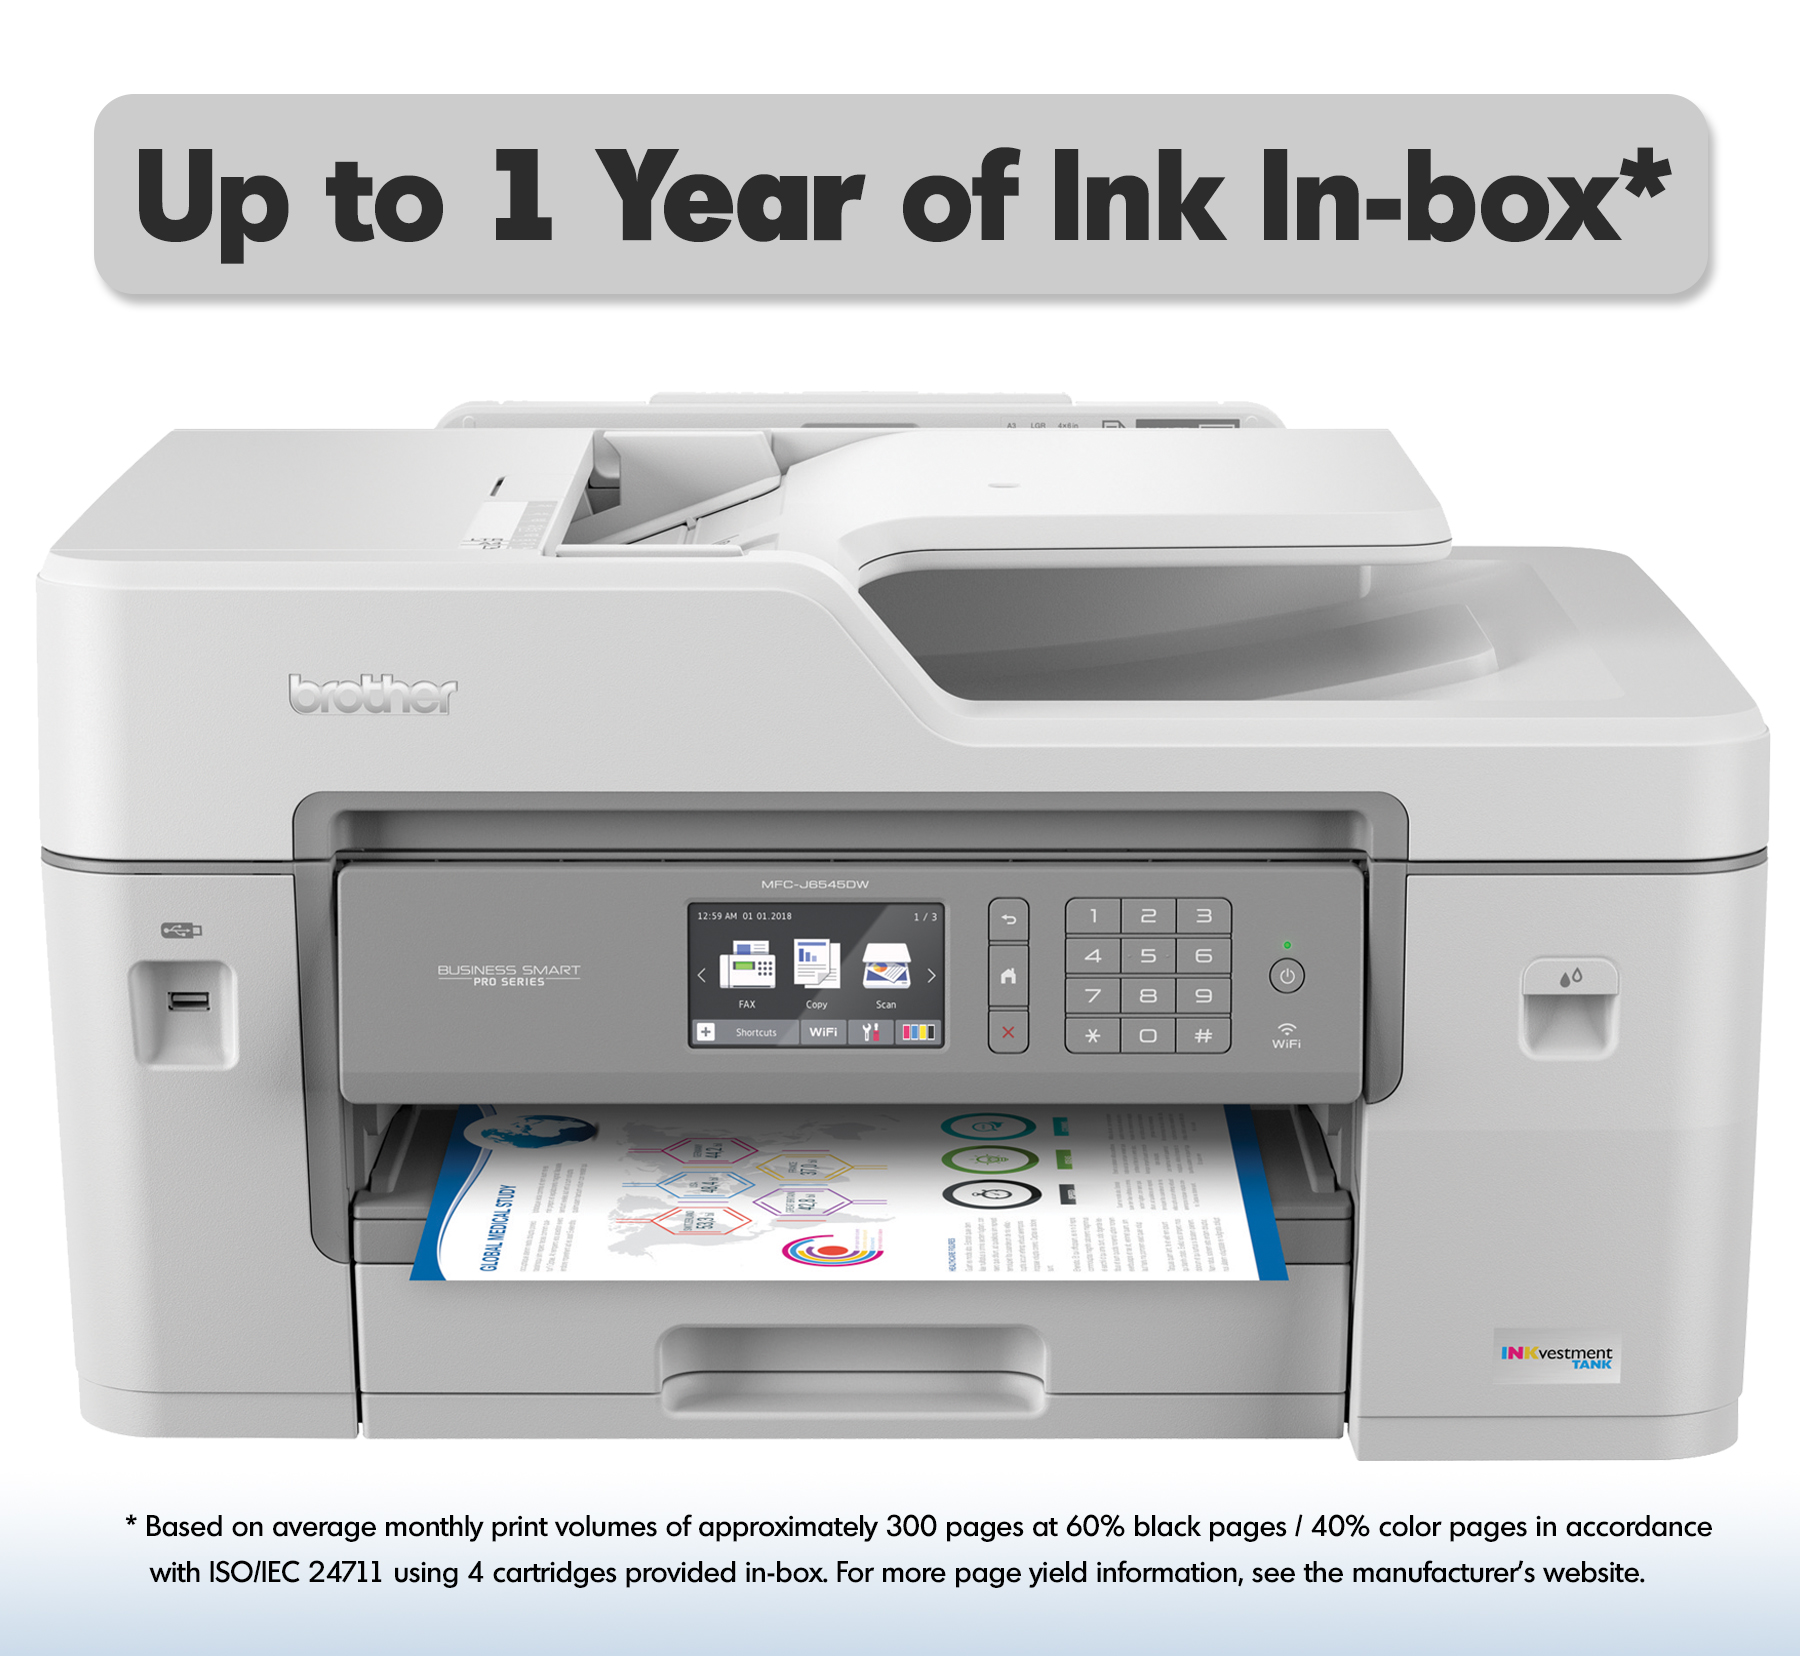 "Brother MFC-J6545DW INKvestment Tank Color Inkjet All-in-One Wireless Printer with 11"" x 17"" Scan Glass and Up to 1-Year of Ink In-box"